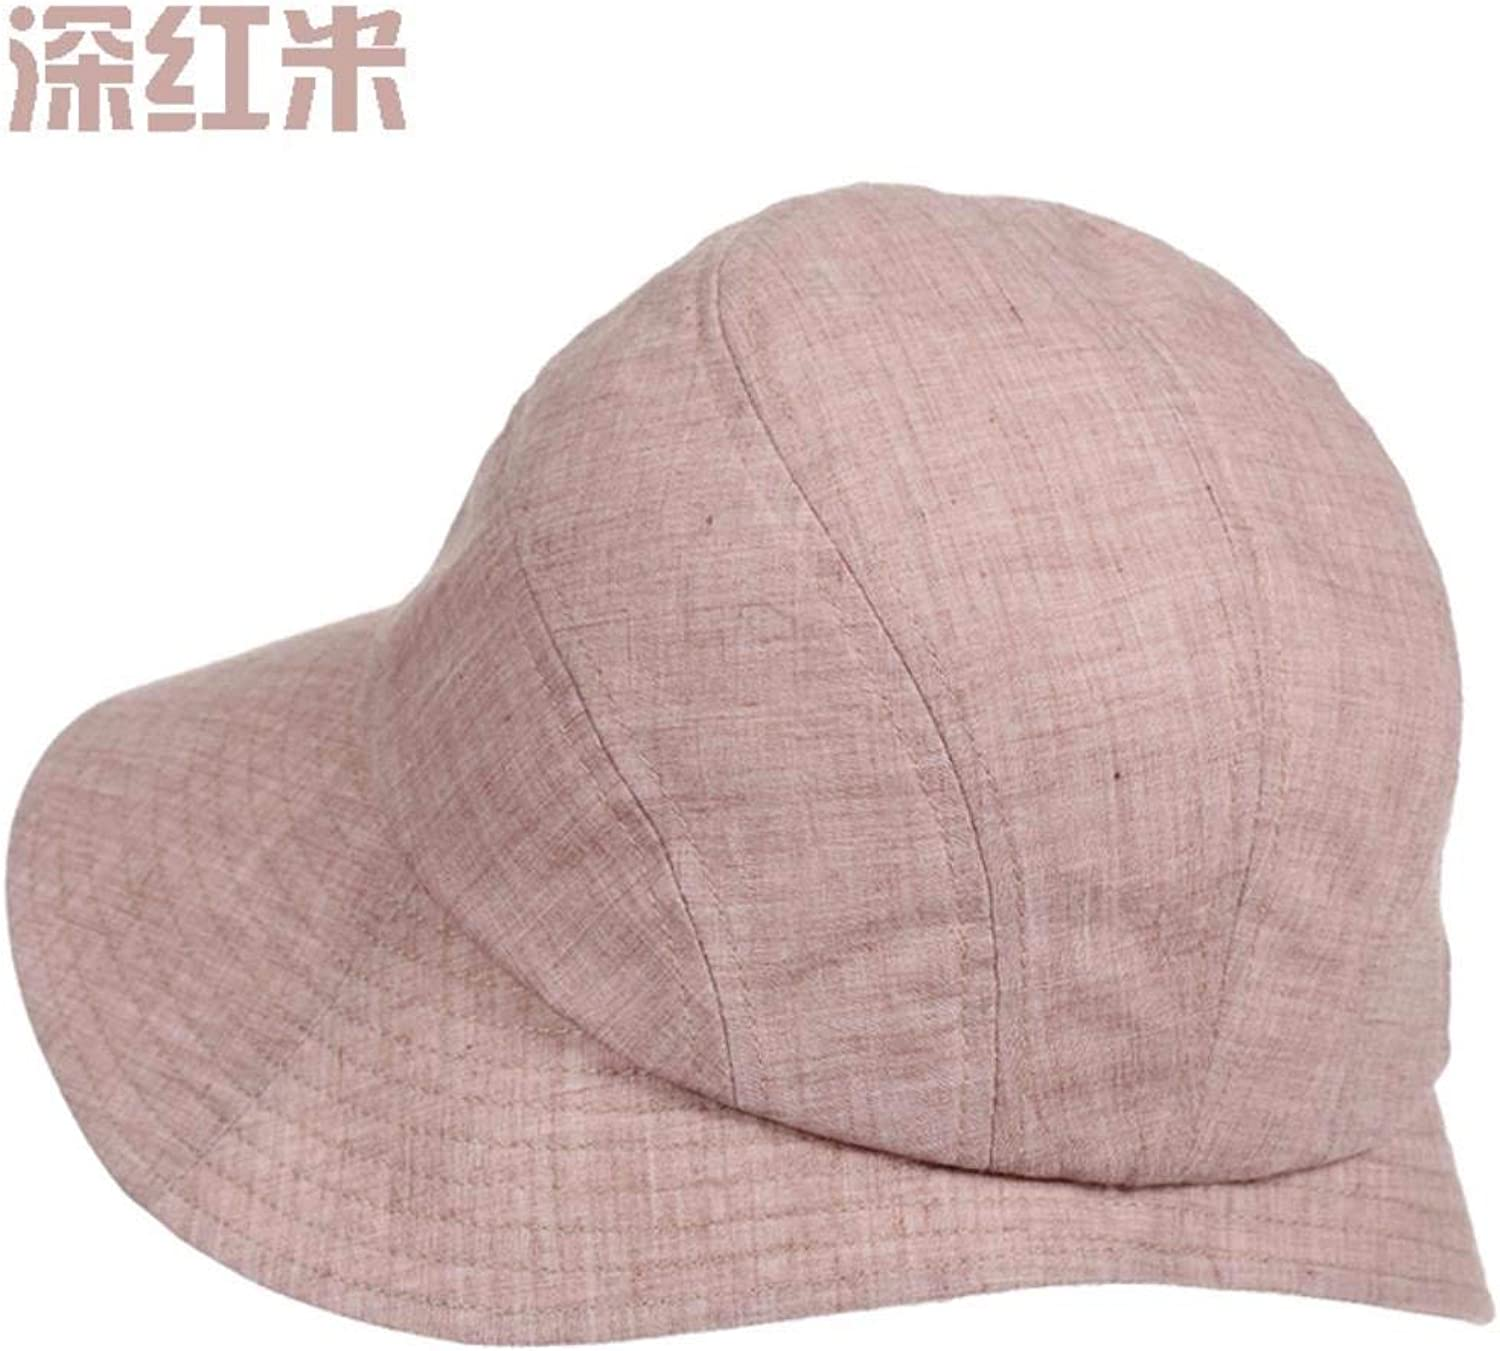 Dingkun The new summer leisure basin cap Female Cap summer outdoor sun hat fisherman hat